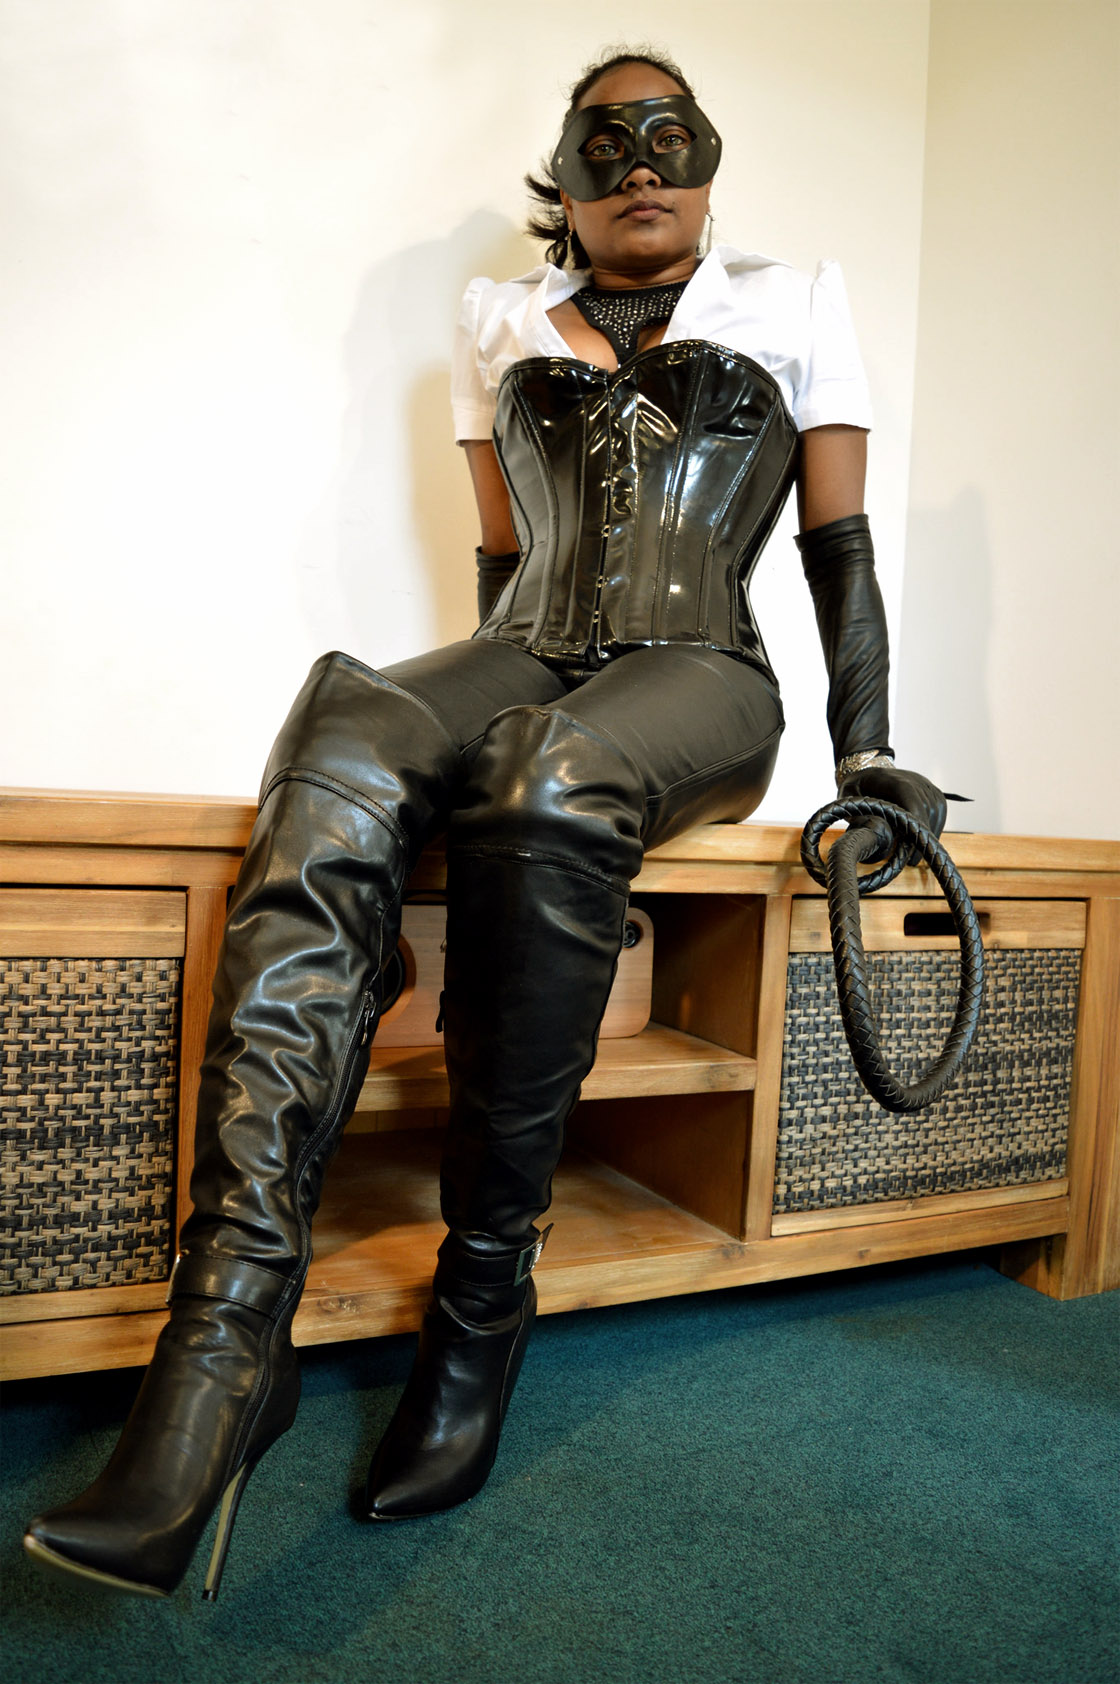 Leather thigh high boots - my collection to date